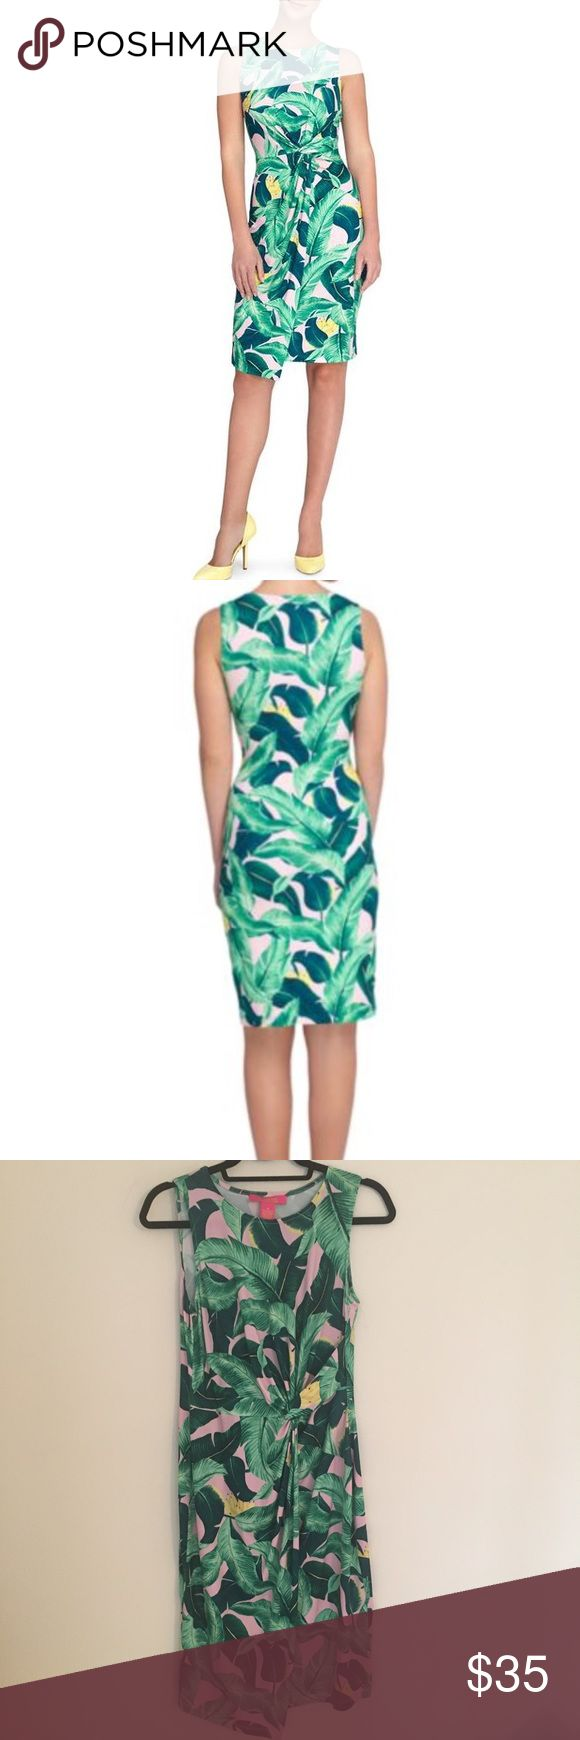 Catherine Malandrino Palm Print Dress Pink with green palm leaves and bananas. Super cute print! Size medium. New with tags. Catherine Malandrino Dresses